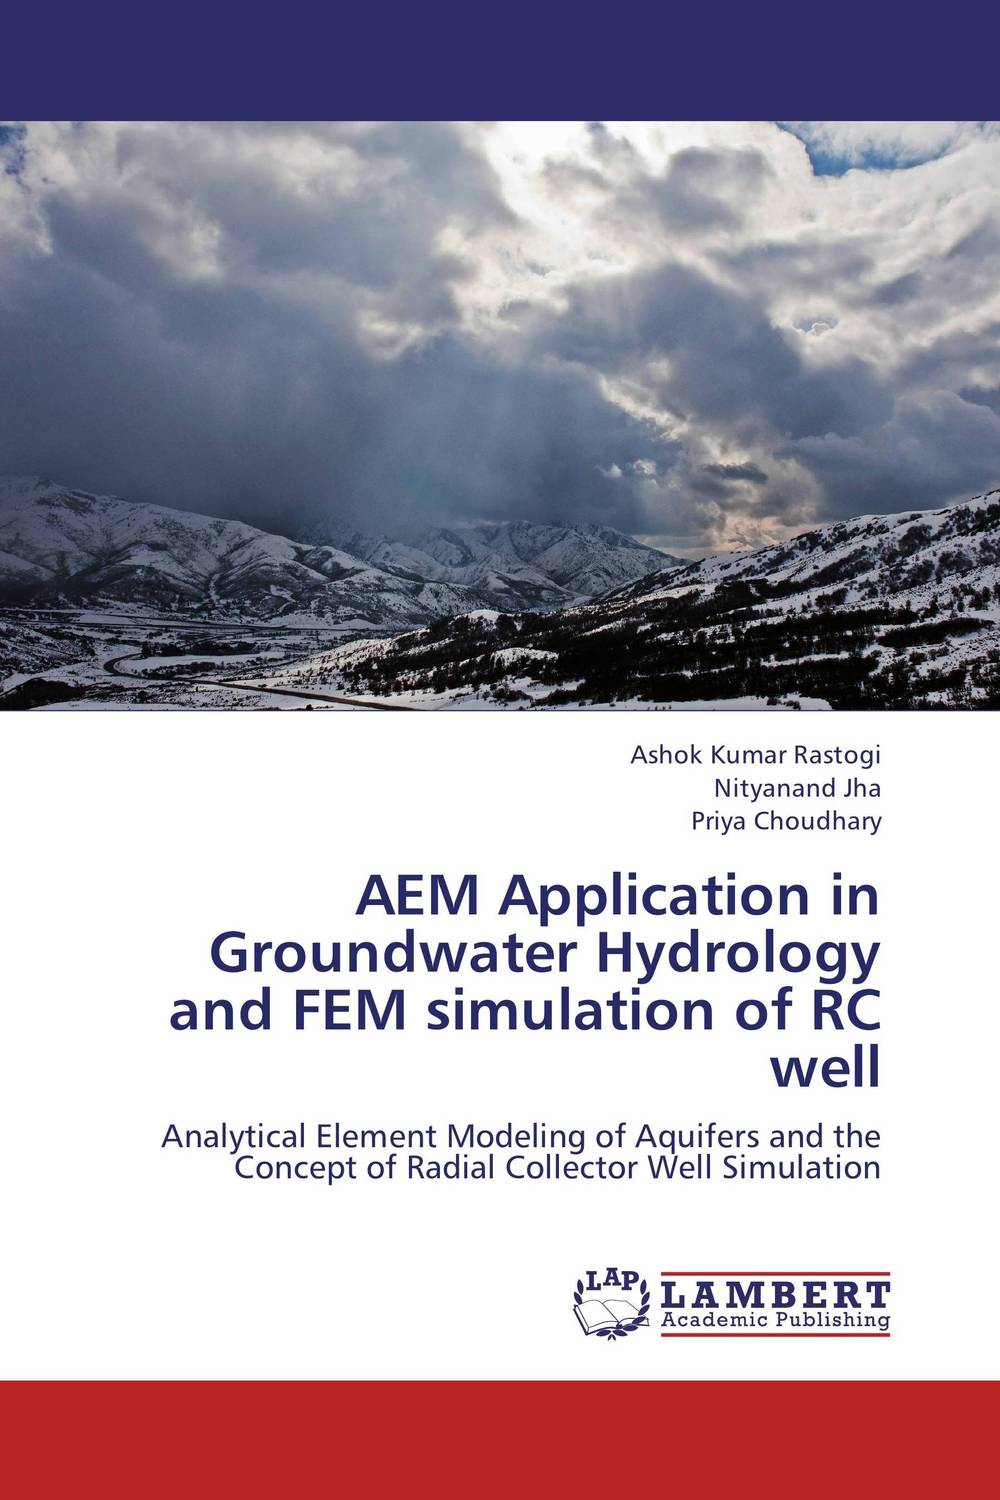 AEM Application in Groundwater Hydrology and FEM simulation of RC well